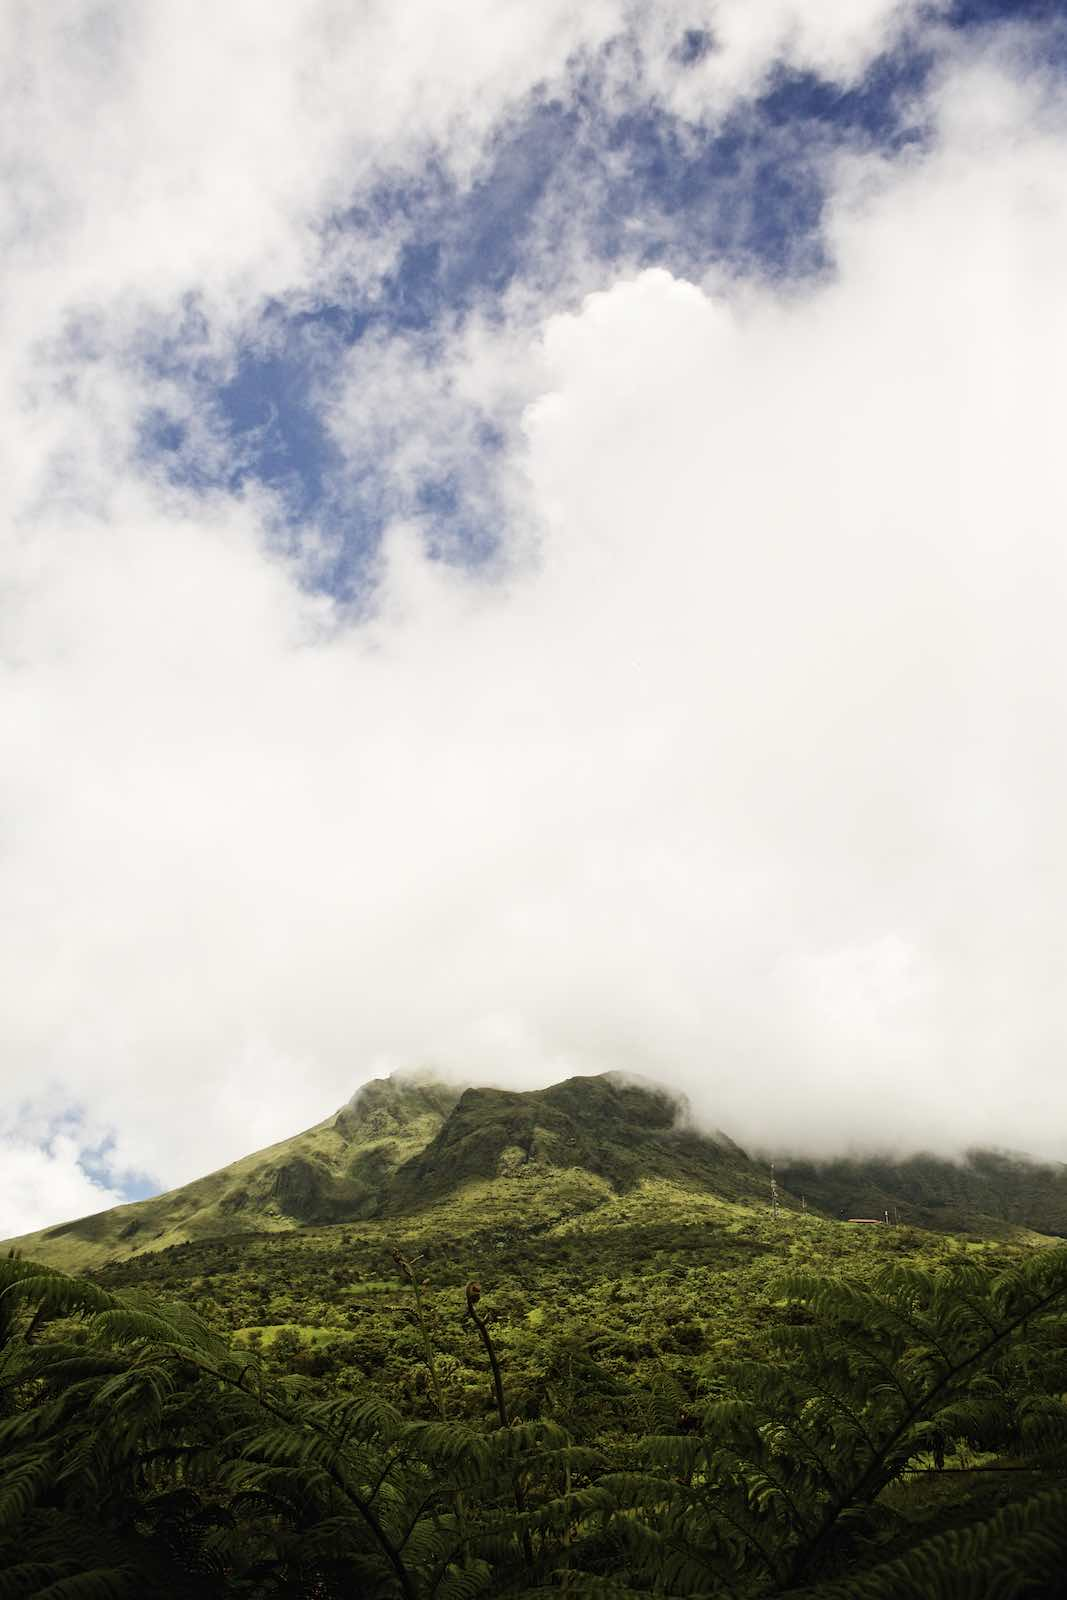 Jody Horton Photography - A lush and tropical mountain with low clouds covering the top.